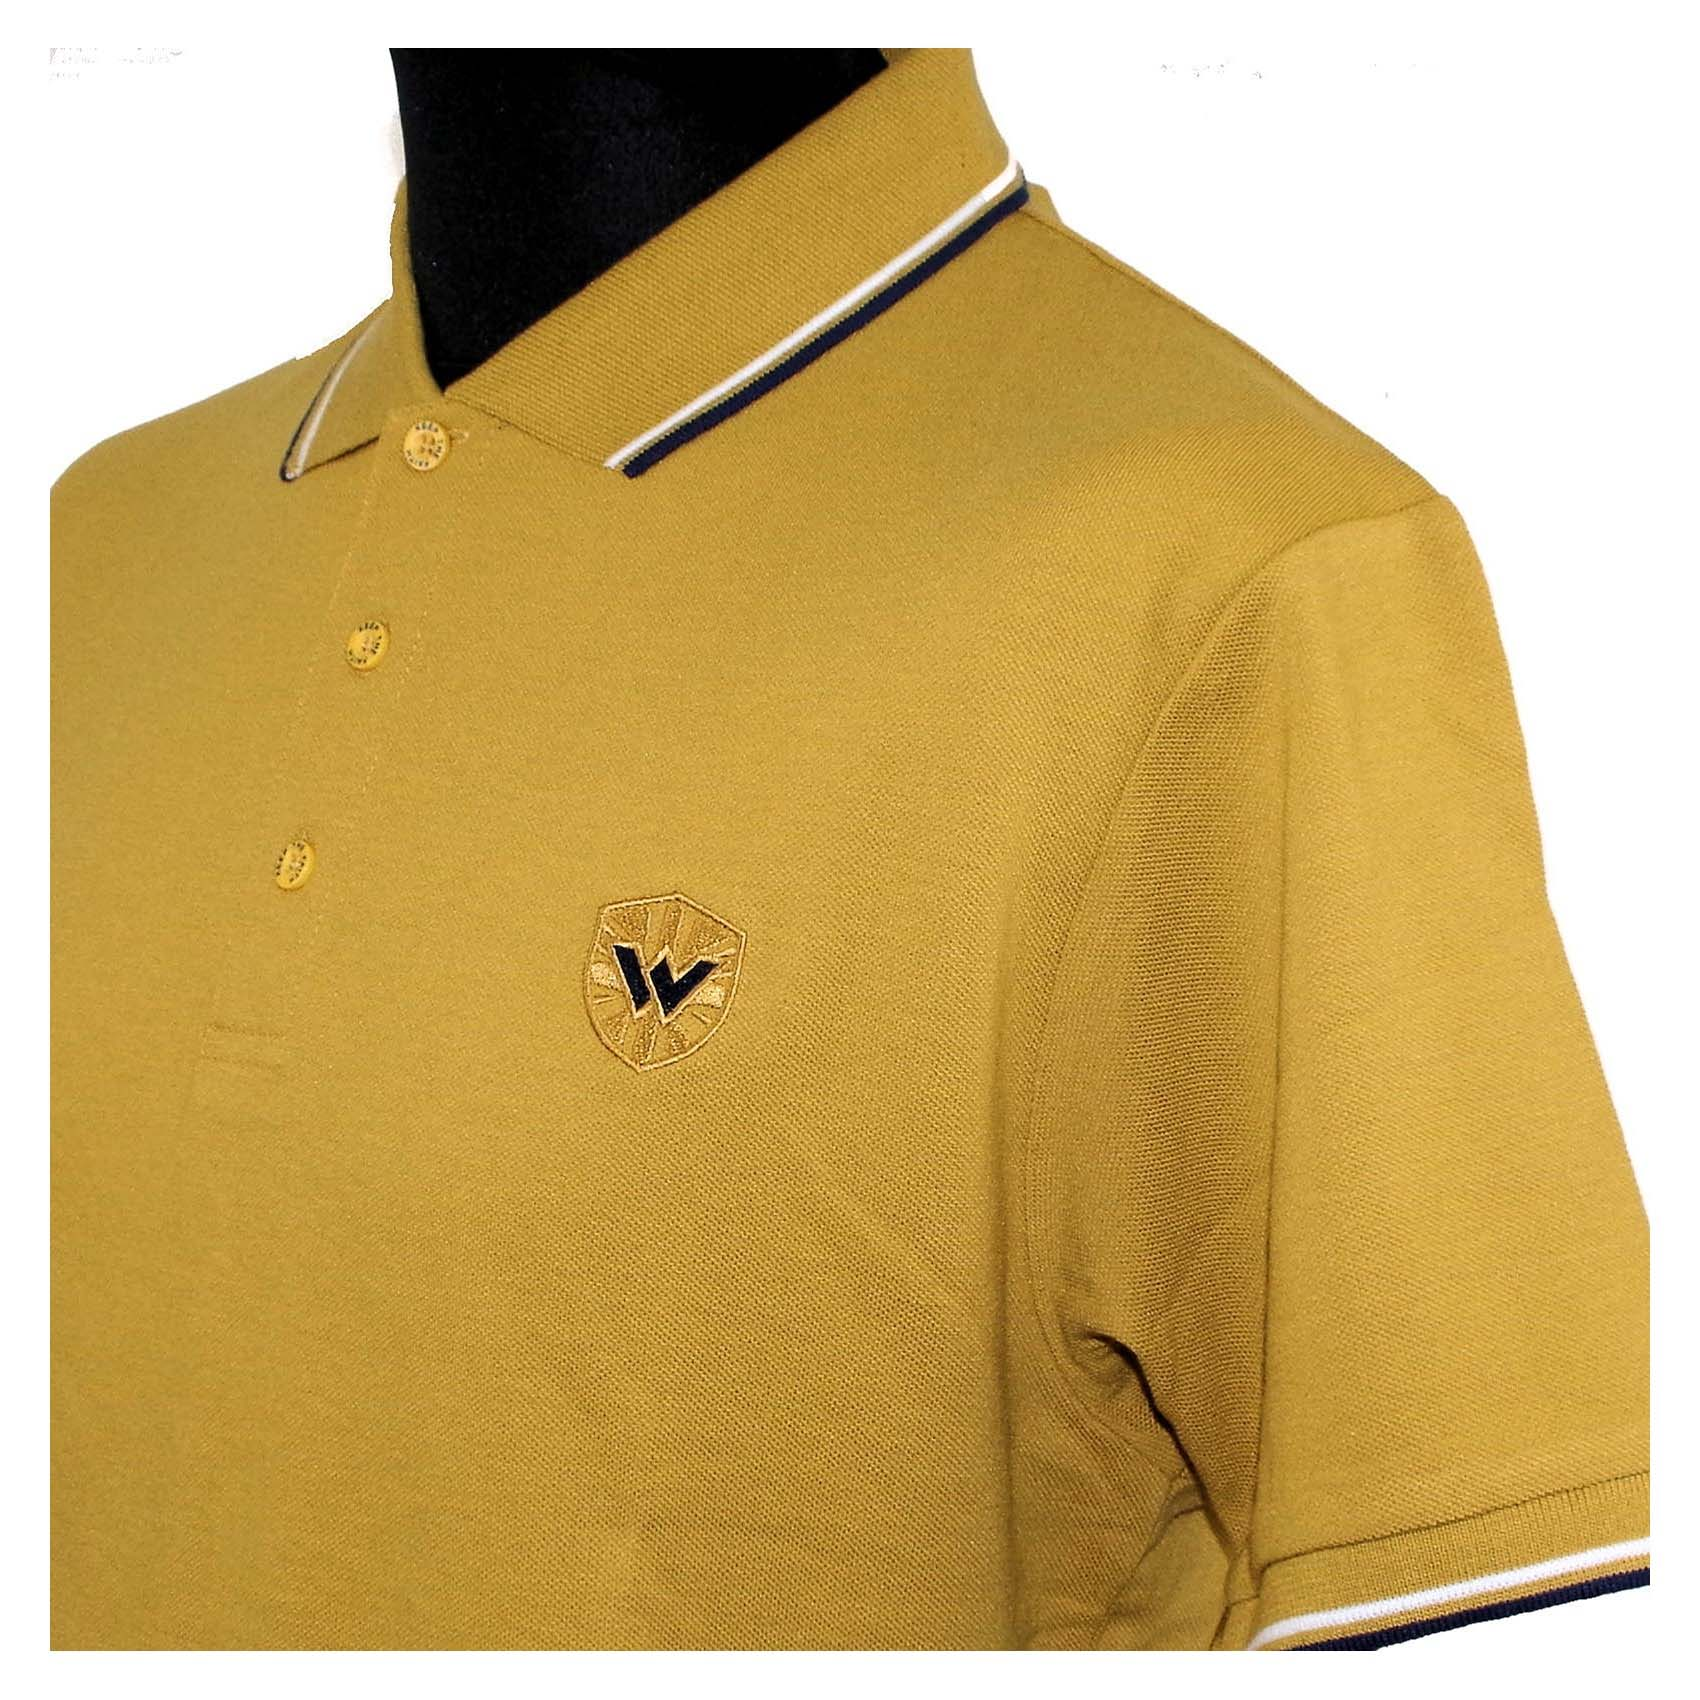 Twin Tipped Polo Shirt by Warrior Clothing- Mustard